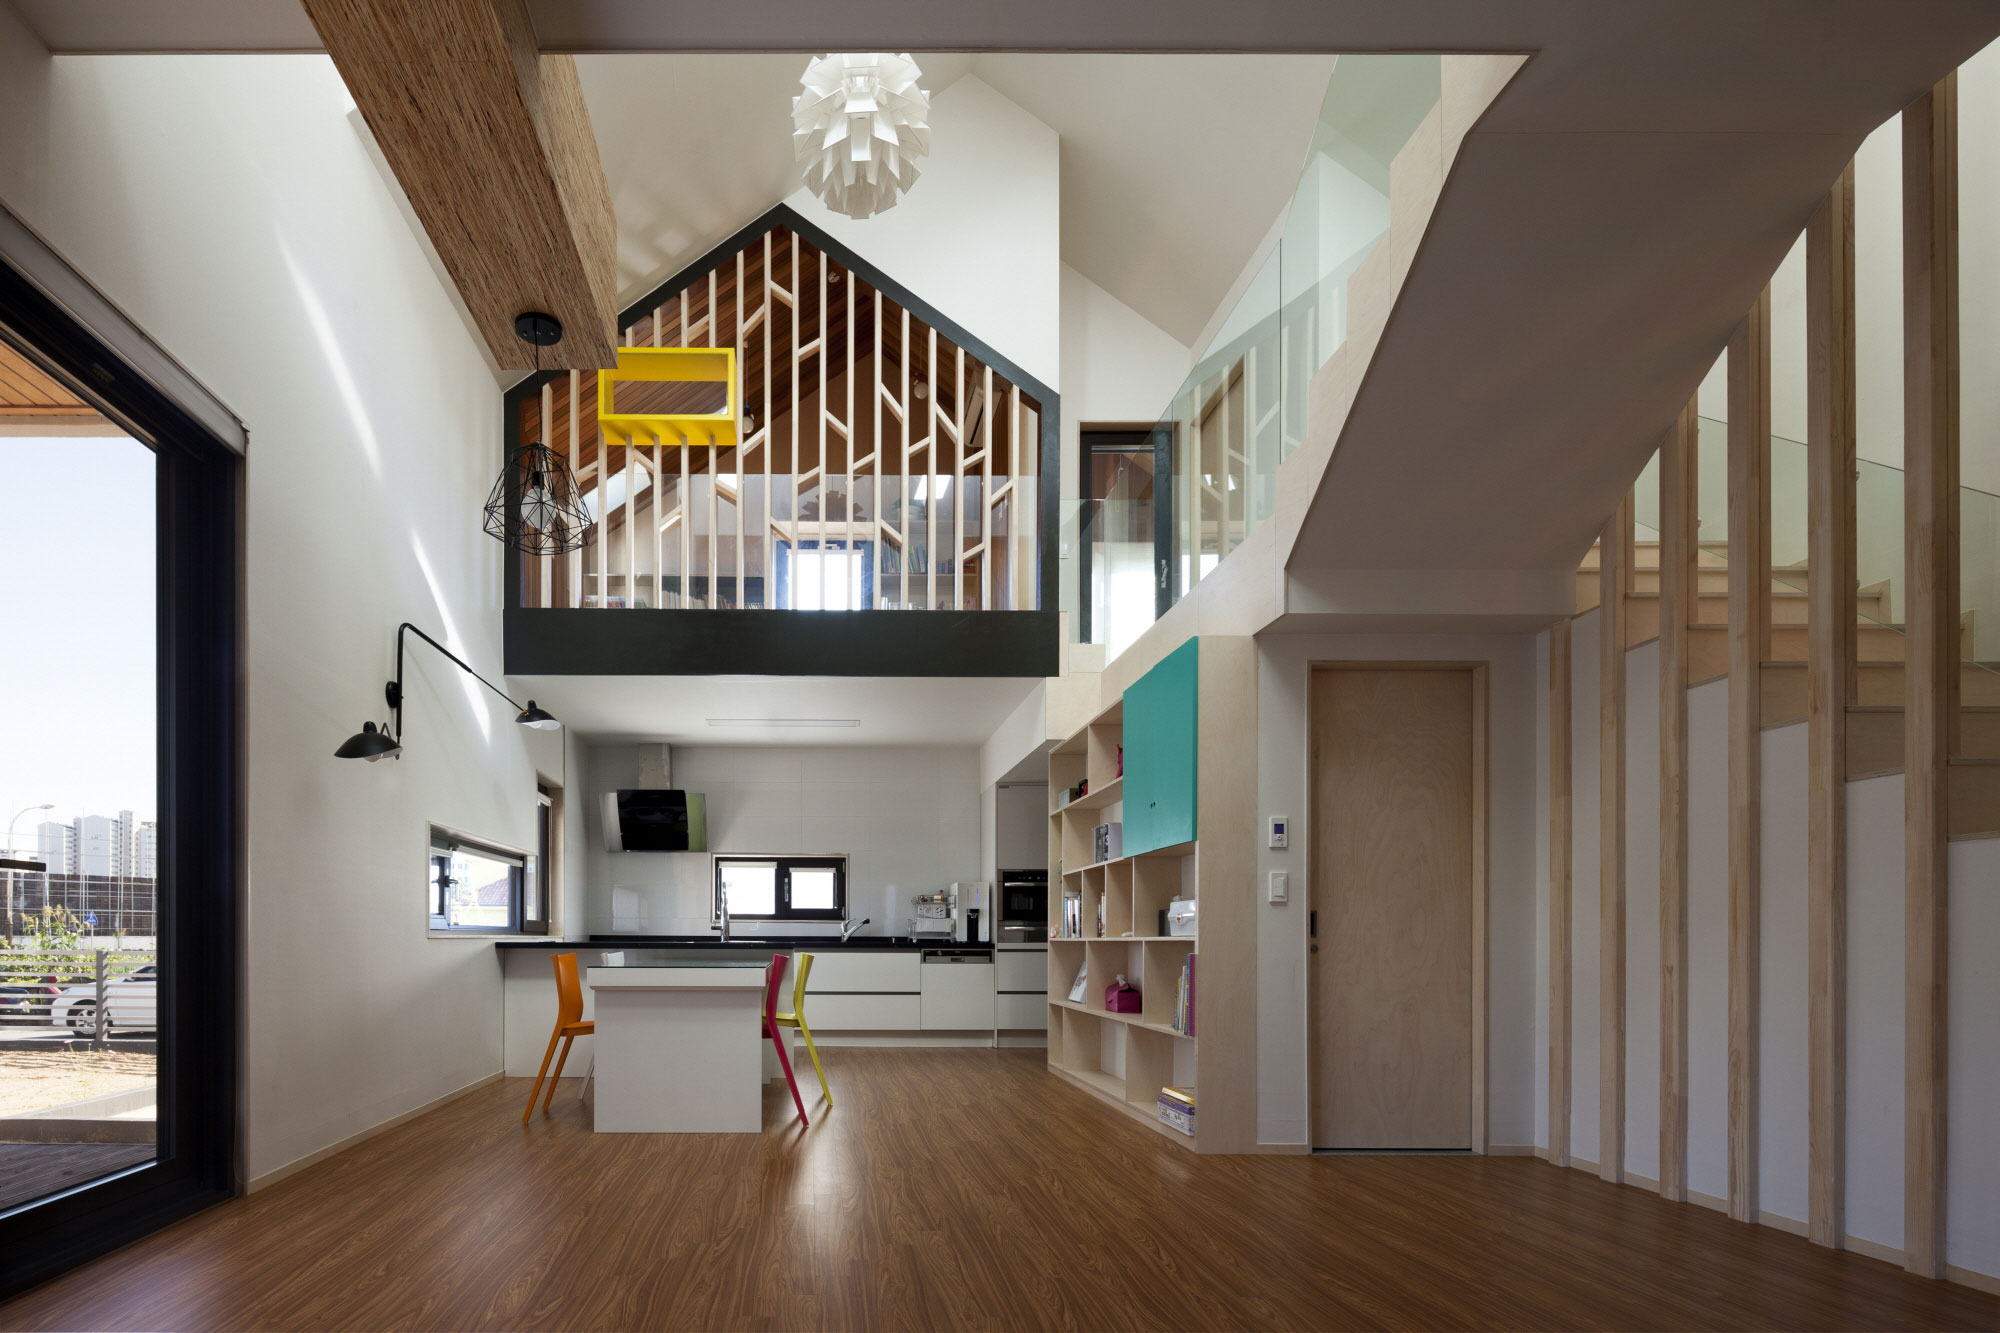 Iksan t shaped house in south korea by kddh architects - Mansions in south korea ...